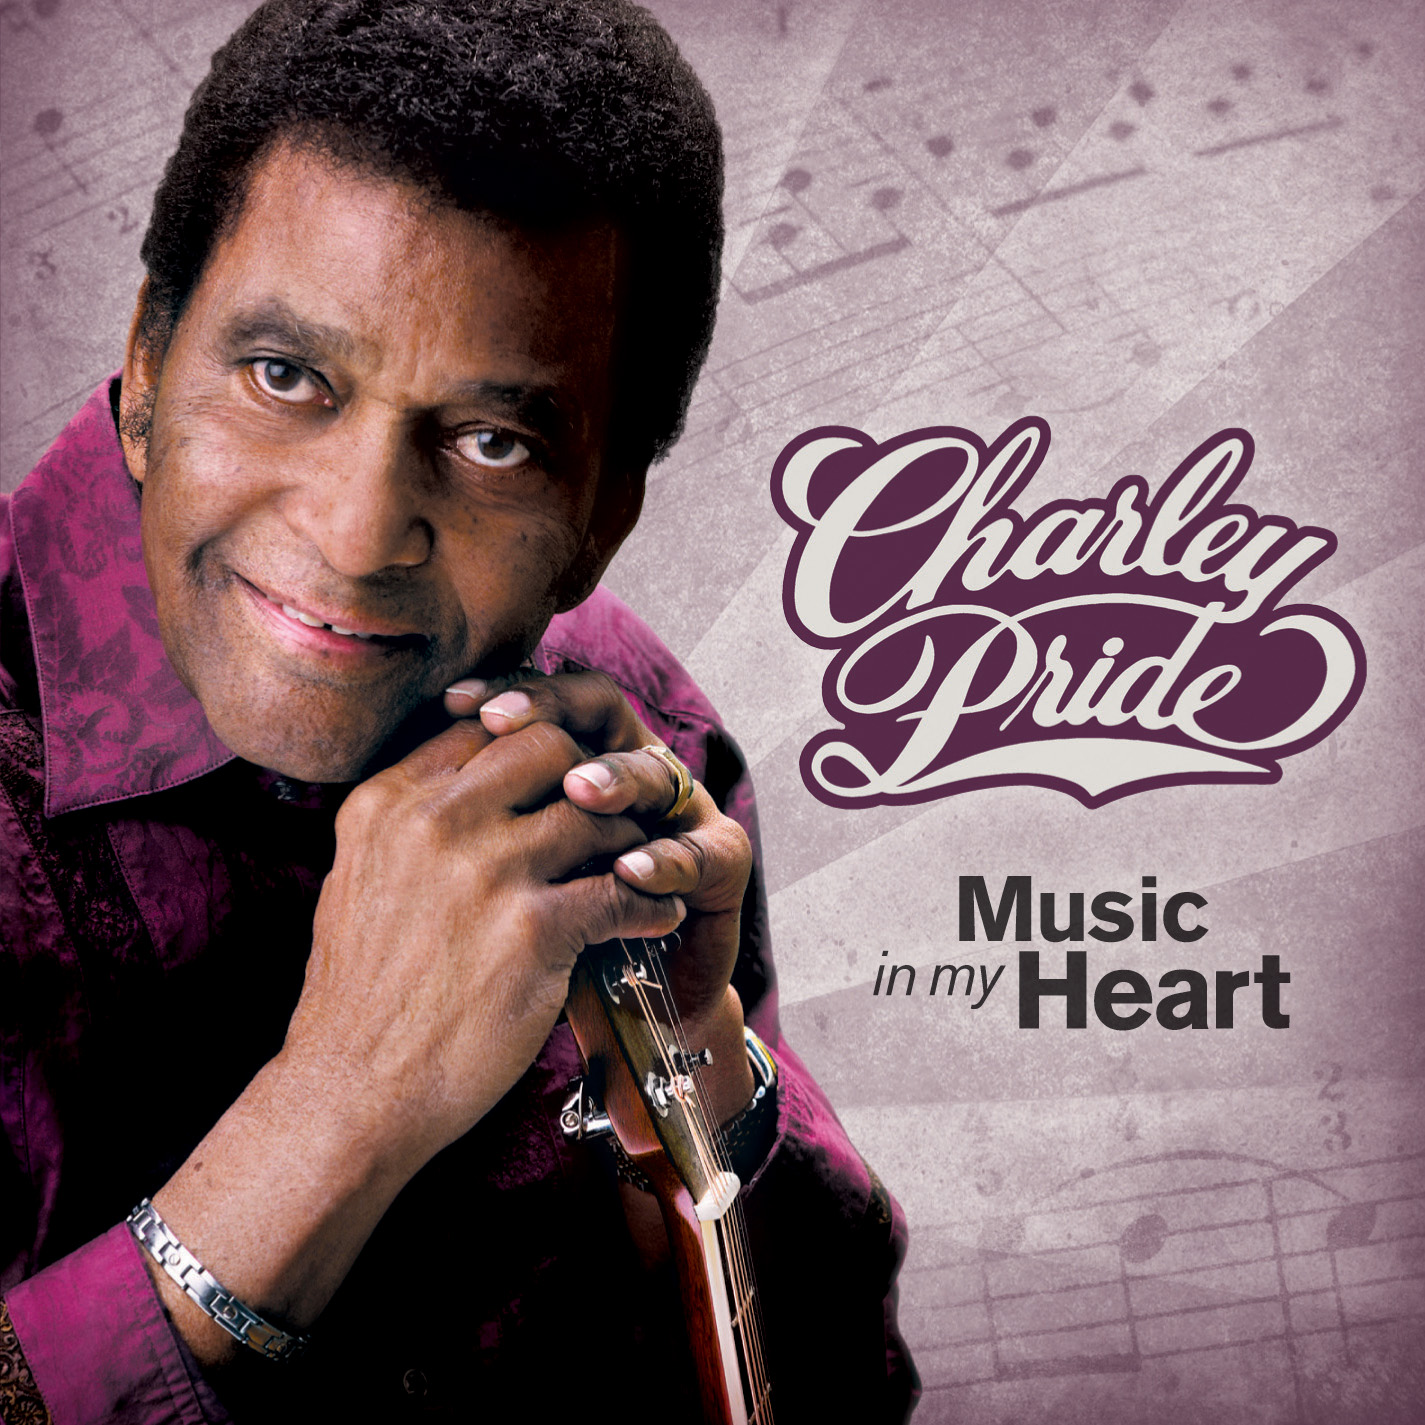 """Charley Pride set to perform on """"The View"""" October 12;'GRAMMY Salute To Music Legends' airs on PBS Oct. 13"""